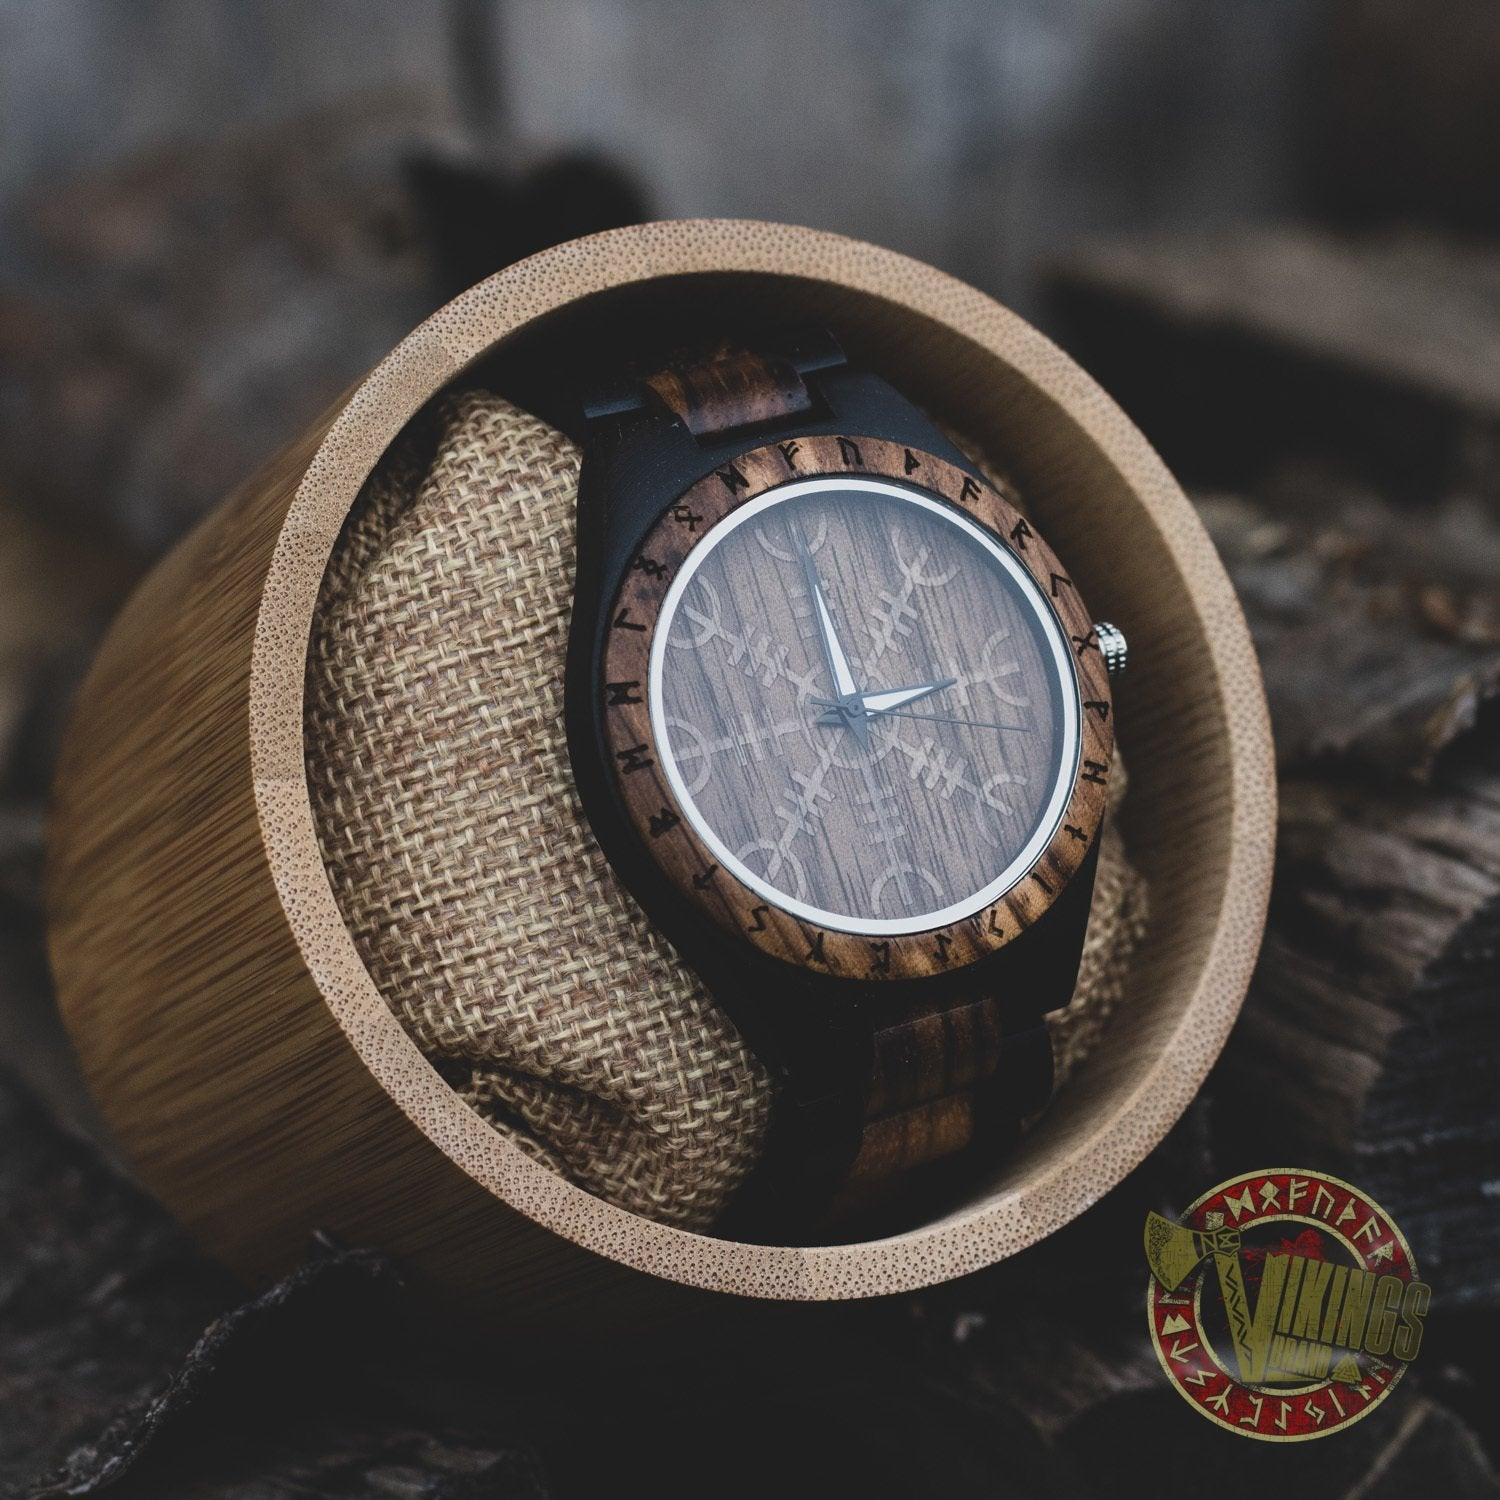 Ivar Viking Wooden Watch with Helm of Awe Viking Symbol & Engraved Die in Battle & Go To Valhalla Saying - VikingsBrand